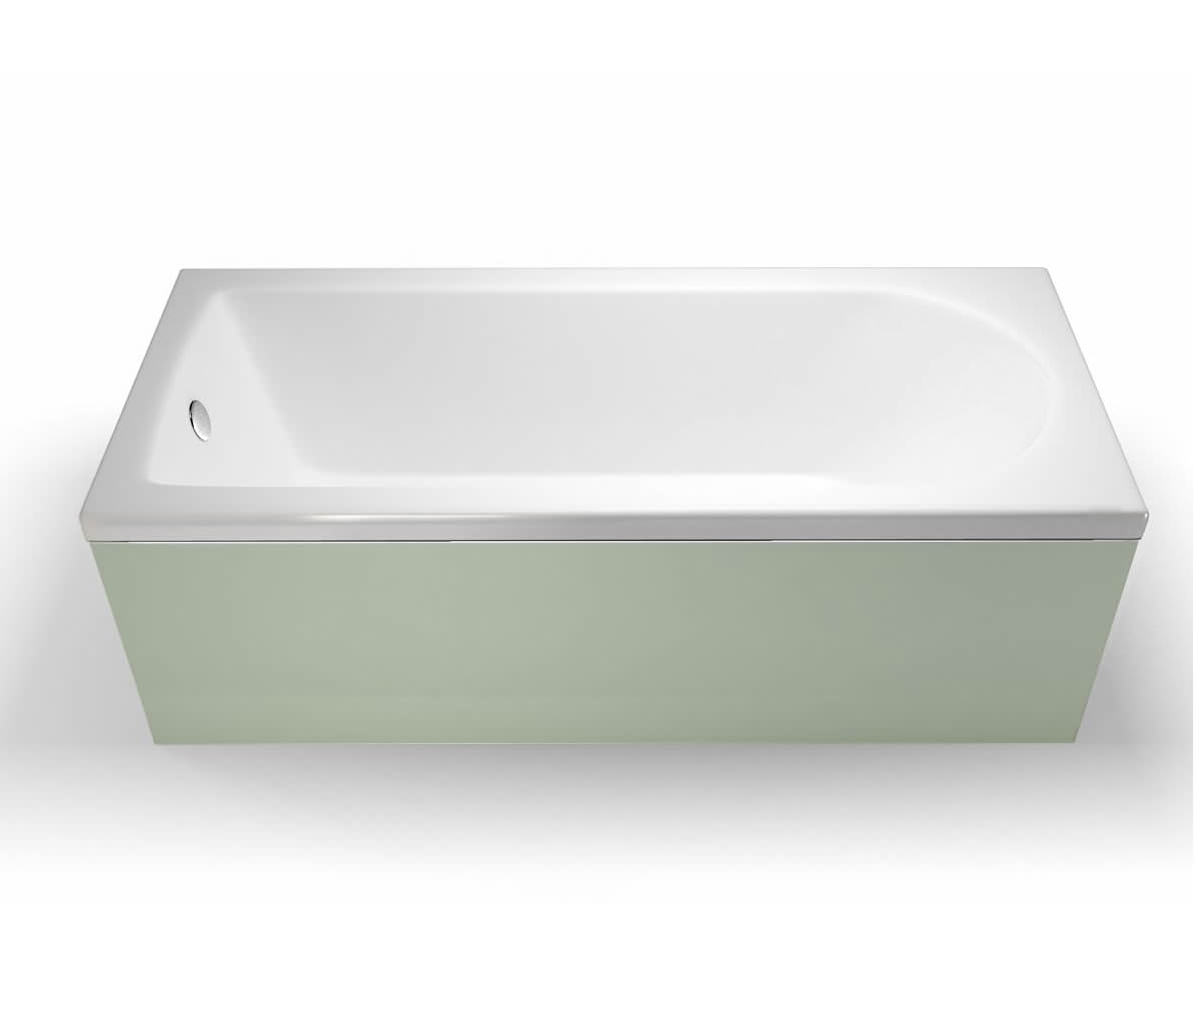 Cleargreen Reuse Rectangular Single Ended Bath 1500 x 700mm Round